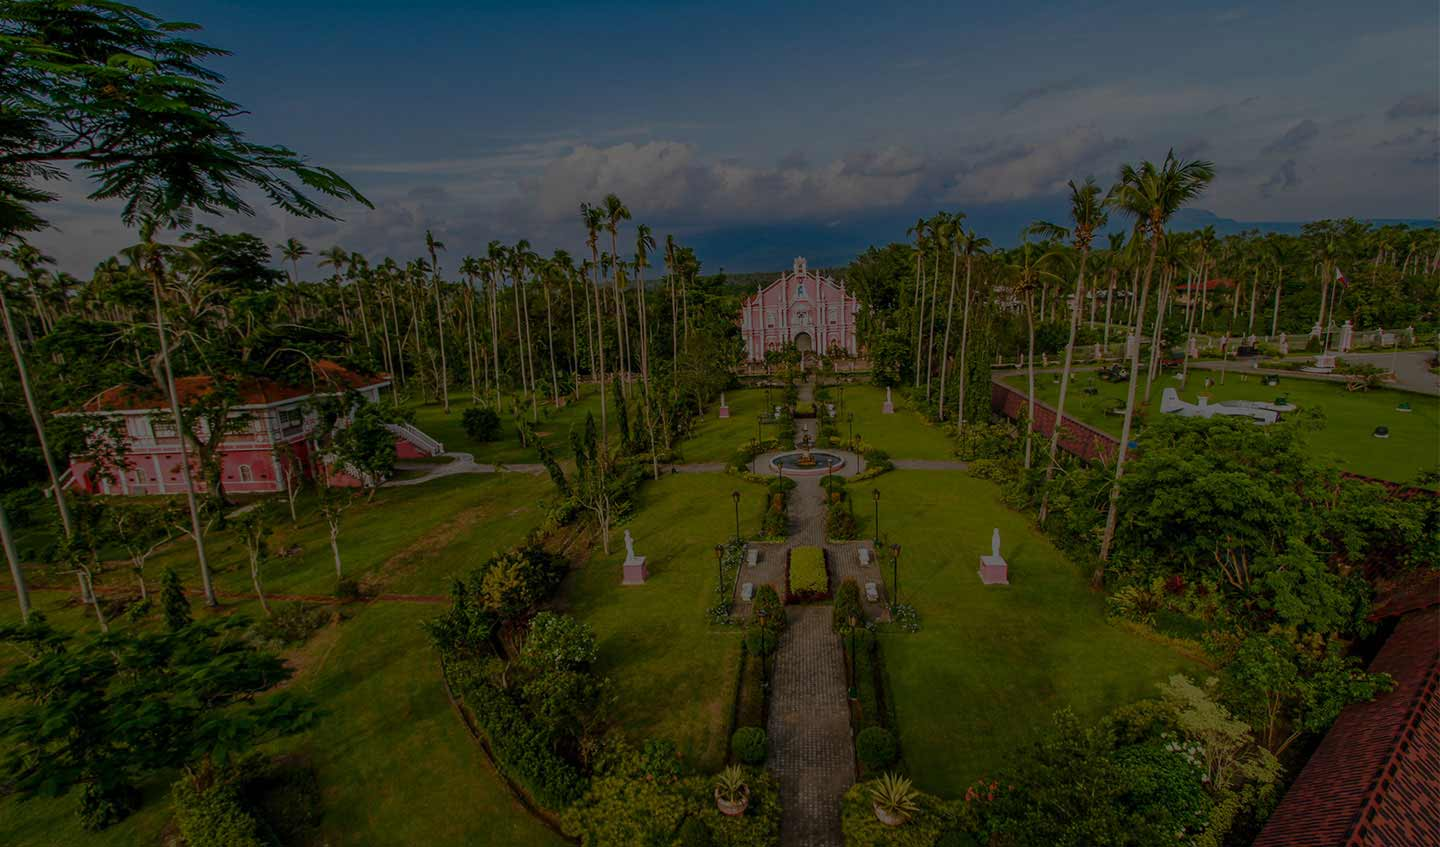 Villa Escudero Plantations And Resort Experience The